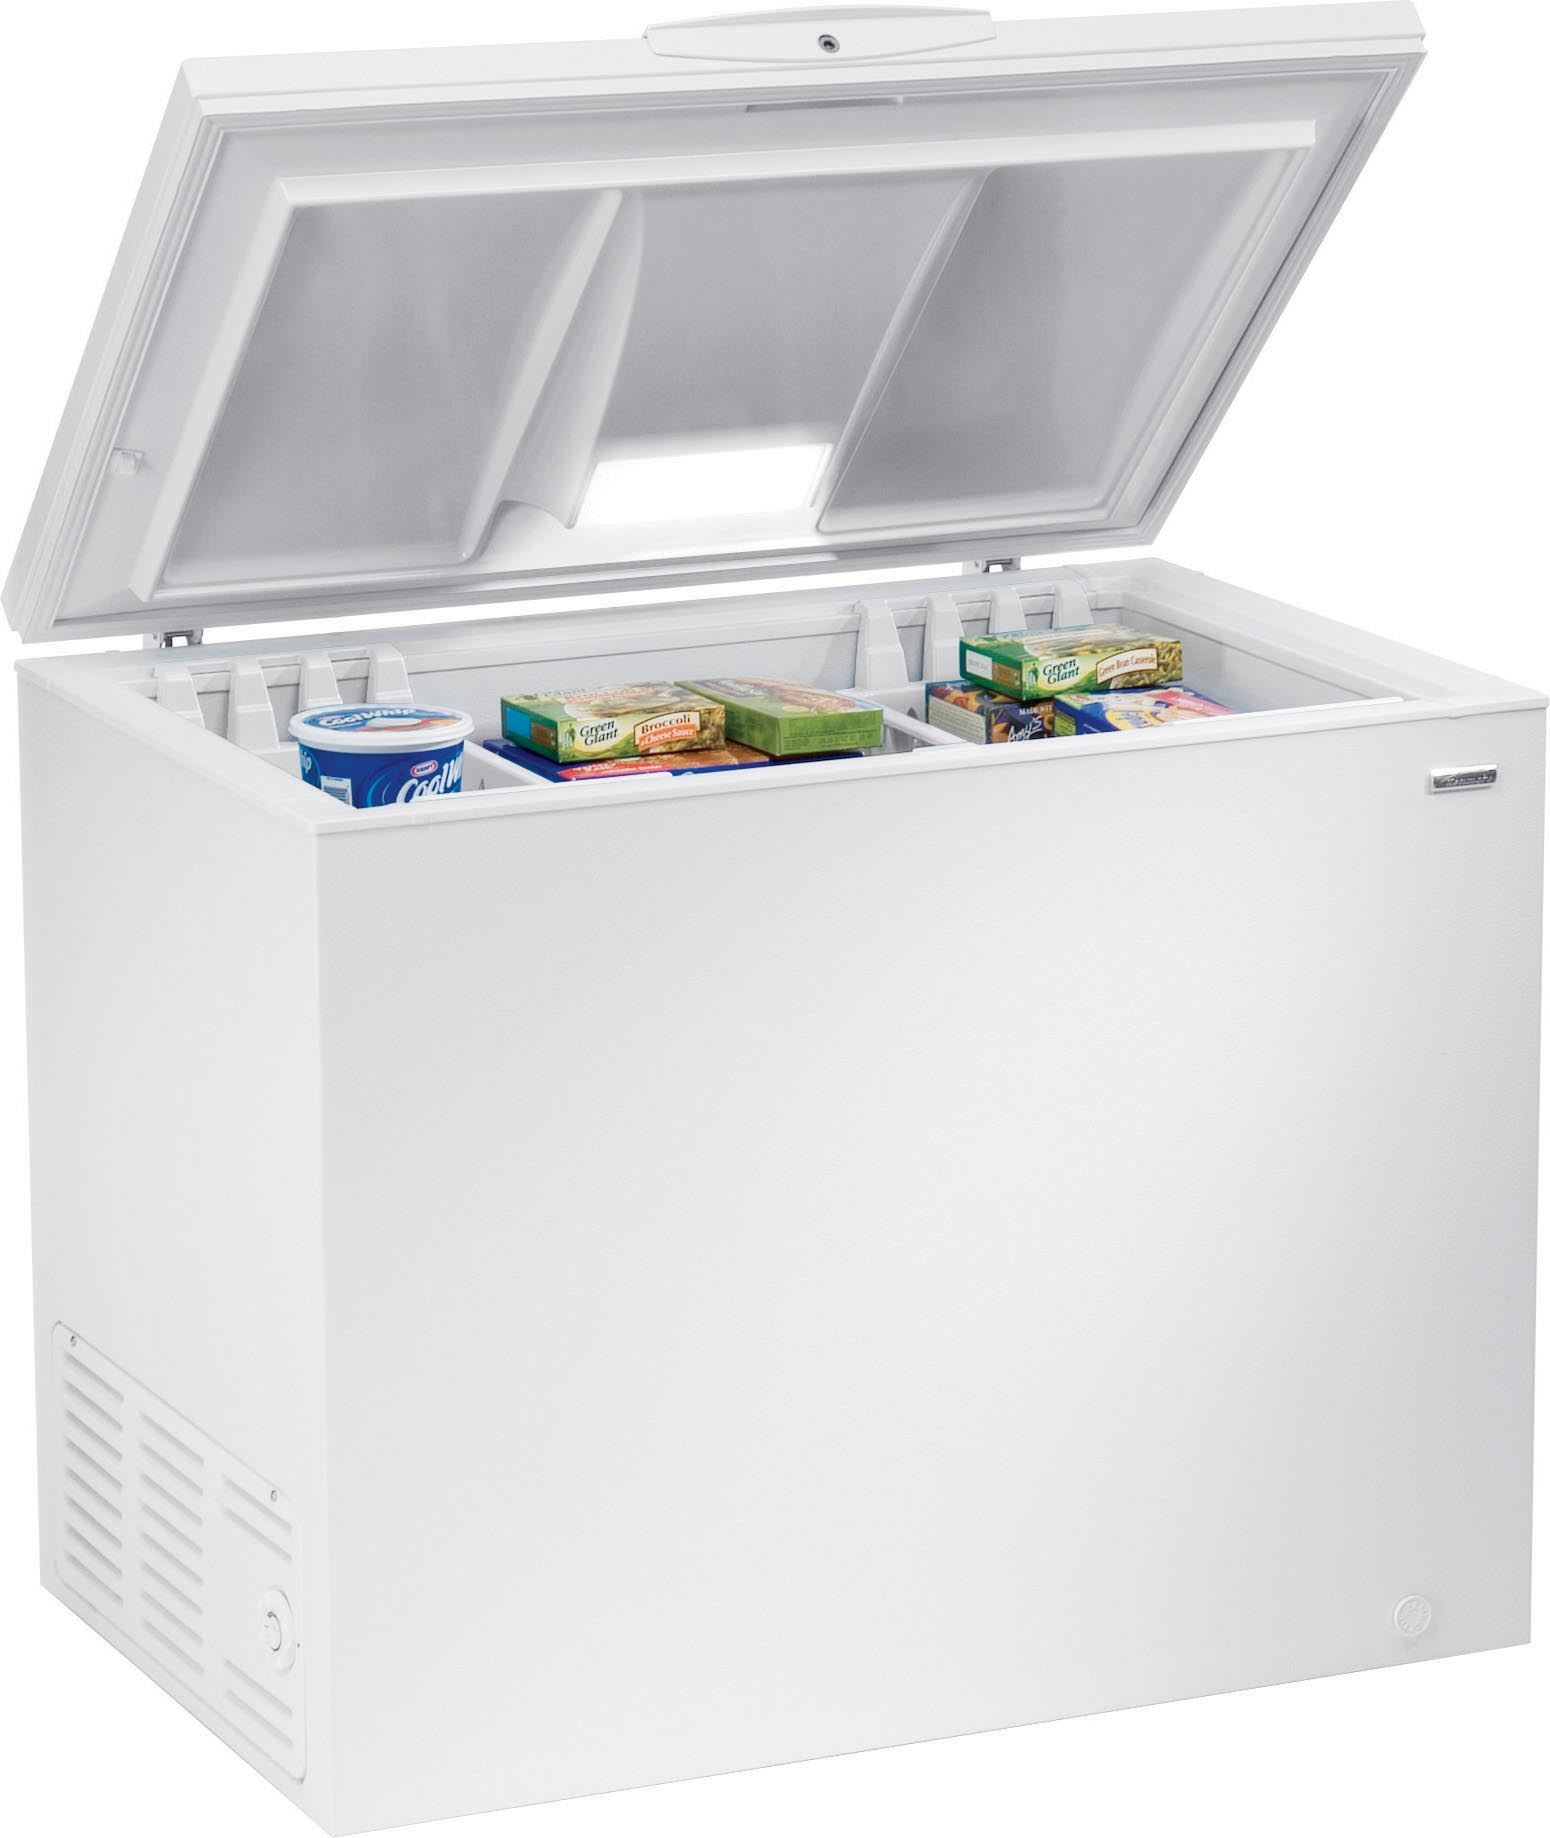 Kmart Freezer Kenmore 16342 13 Cu Ft Chest Freezer